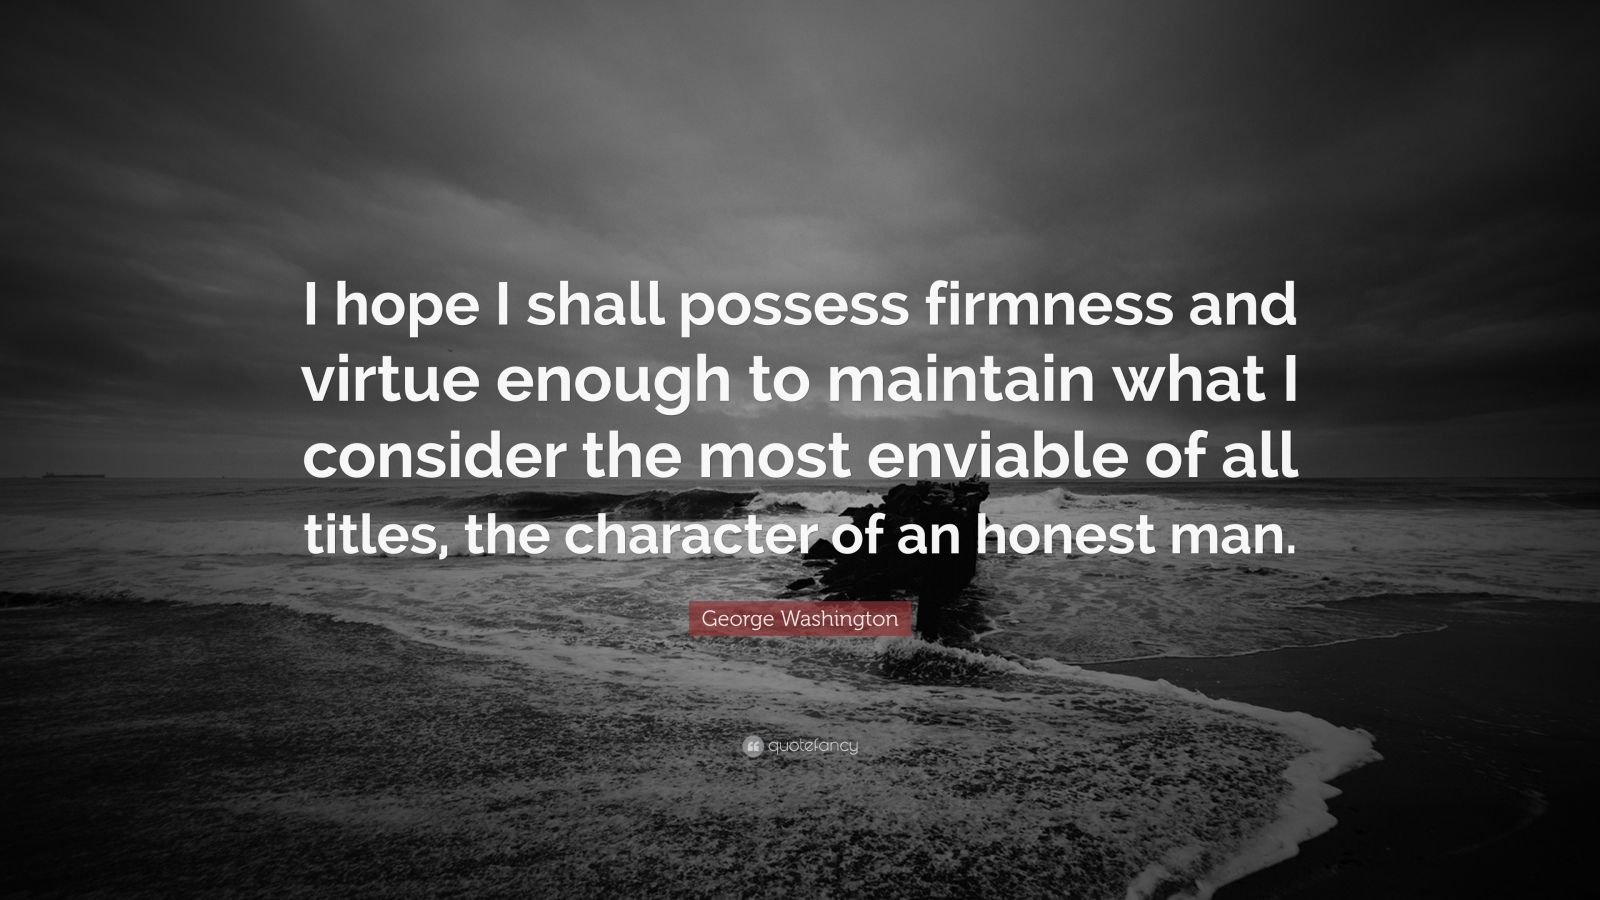 Theodore Roosevelt Wallpaper Quote George Washington Quote I Hope I Shall Possess Firmness